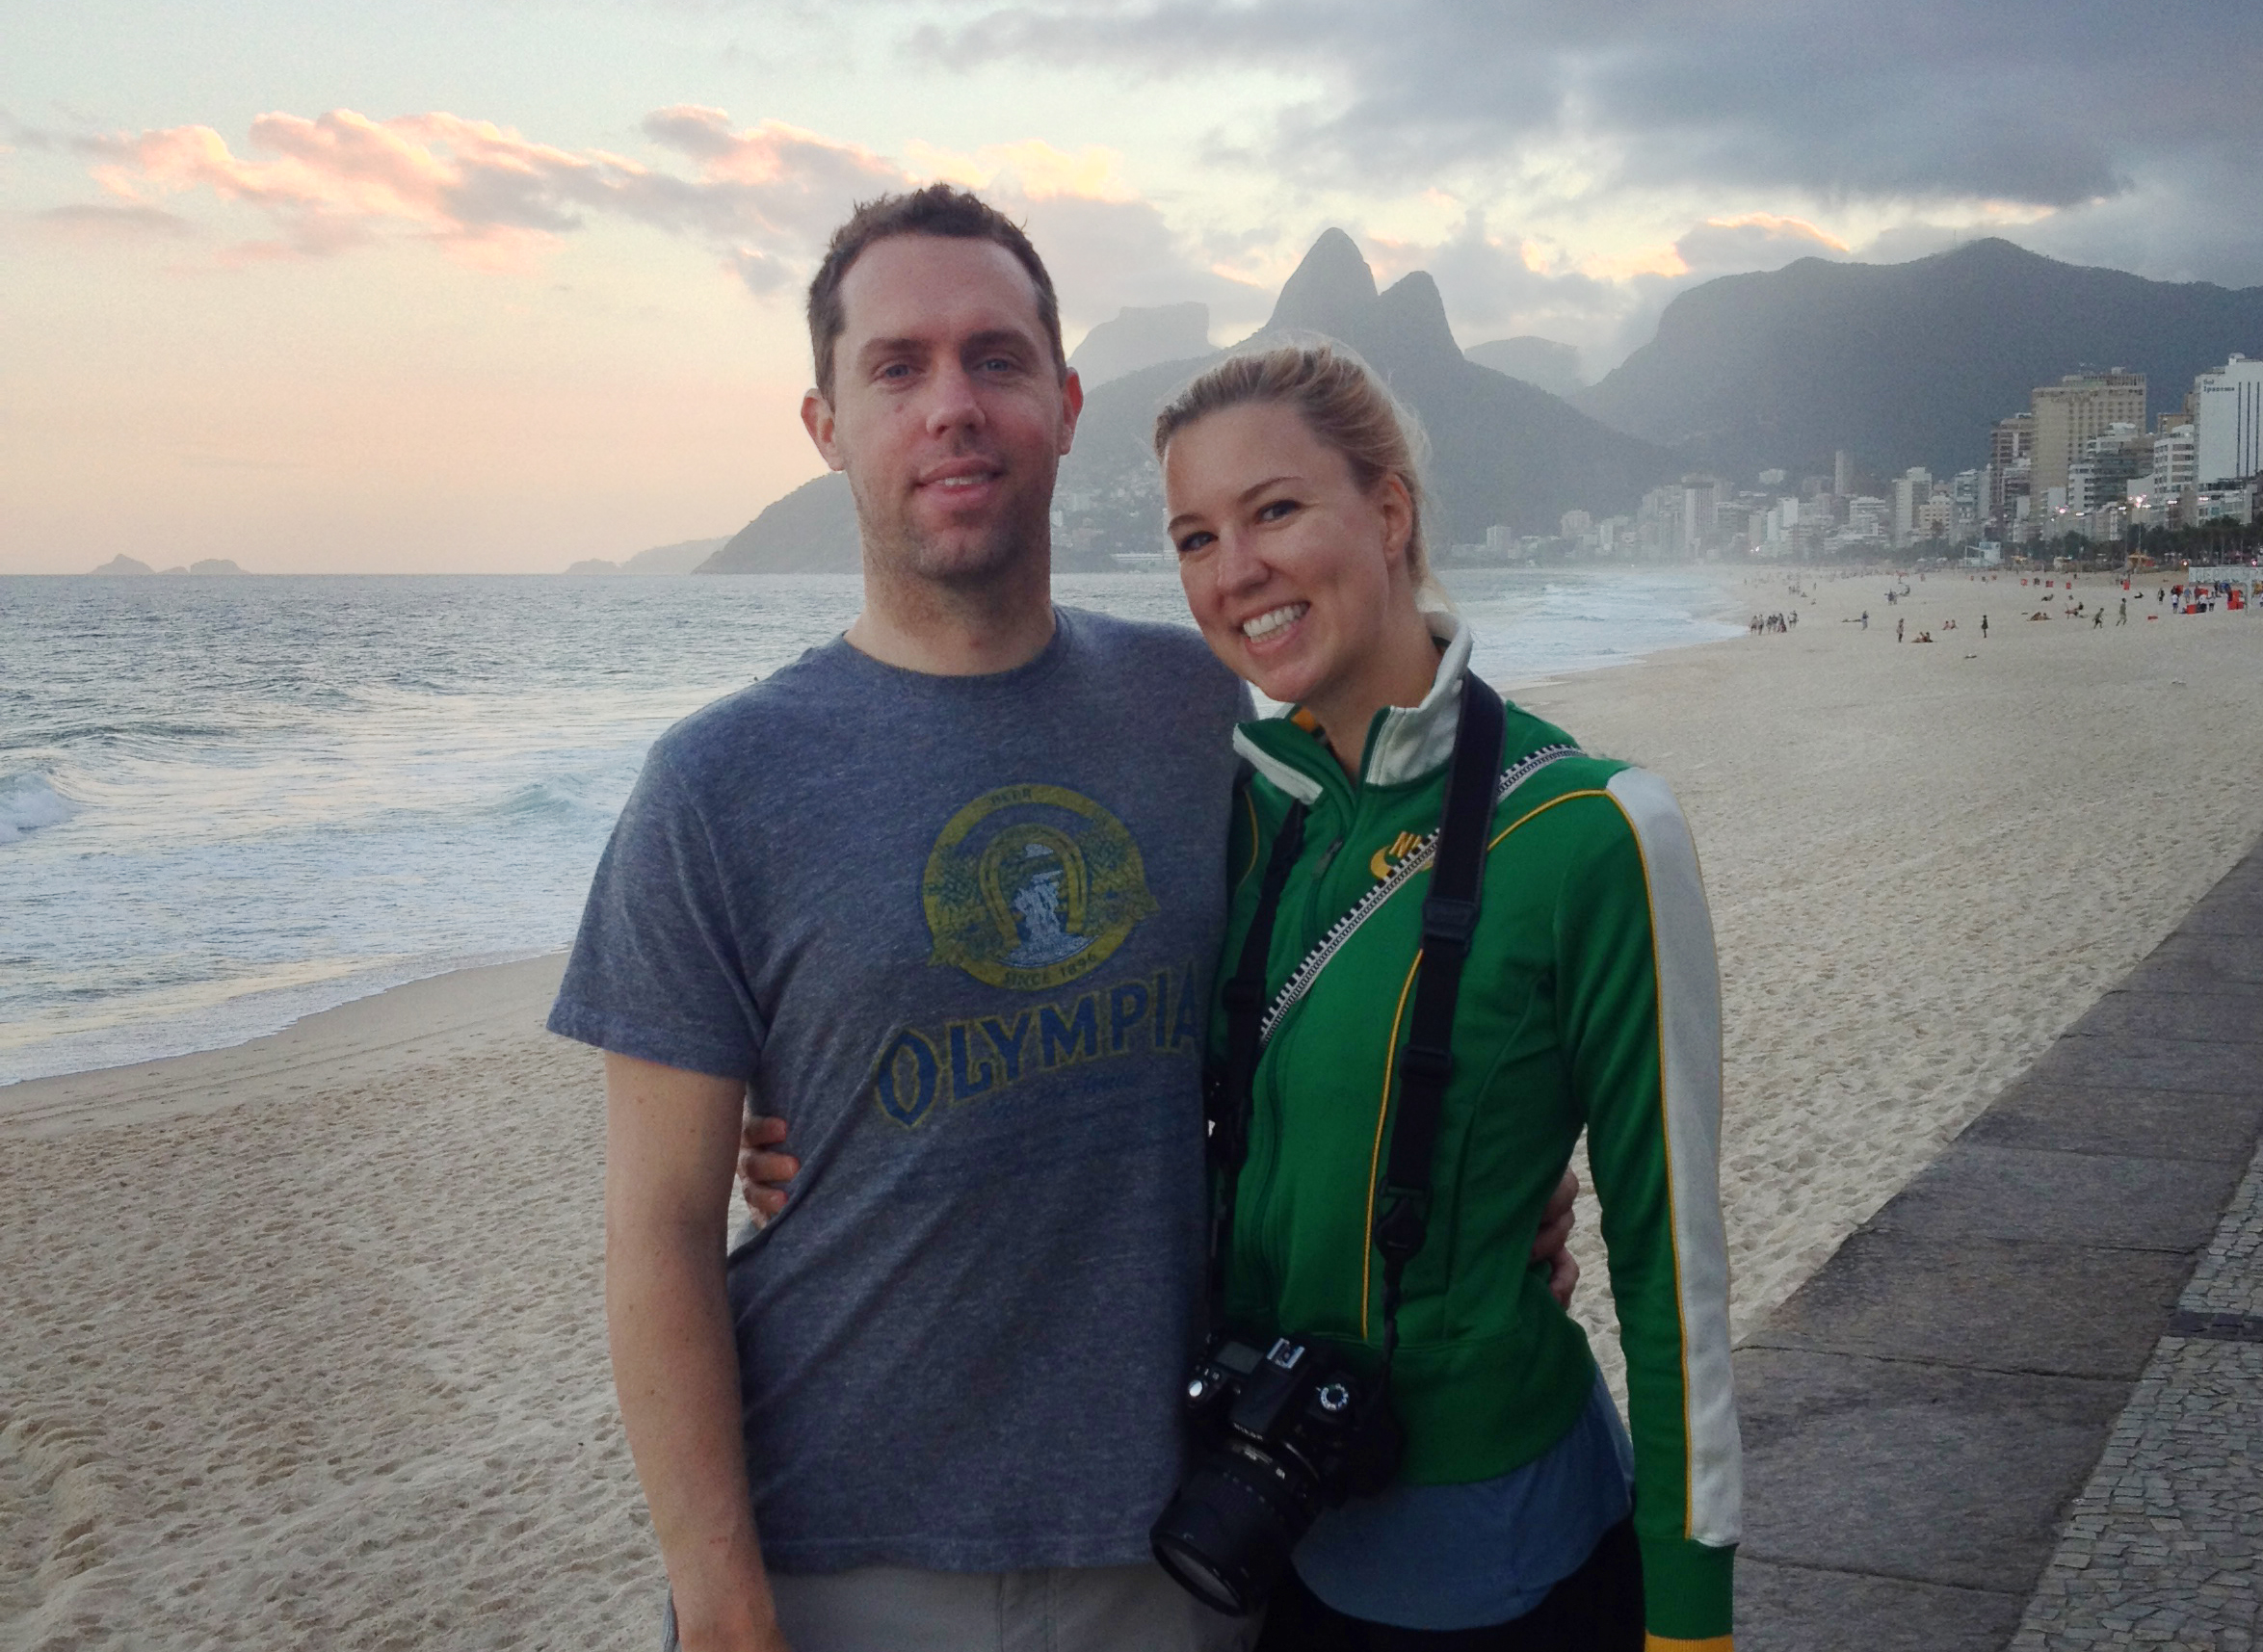 - RIO DE JANEIRO, BRAZILFeatured: Ipanema, Urca, Sugarloaf Mountain, Rio de Janeiro Botanical Garden (Jardim Botânico), Christ the Redeemer and Copacabana beachSyndication and licensing worldwide available through Aurora PhotosTo the left: A behind the scenes photo of my husband and I on Ipanema Beach